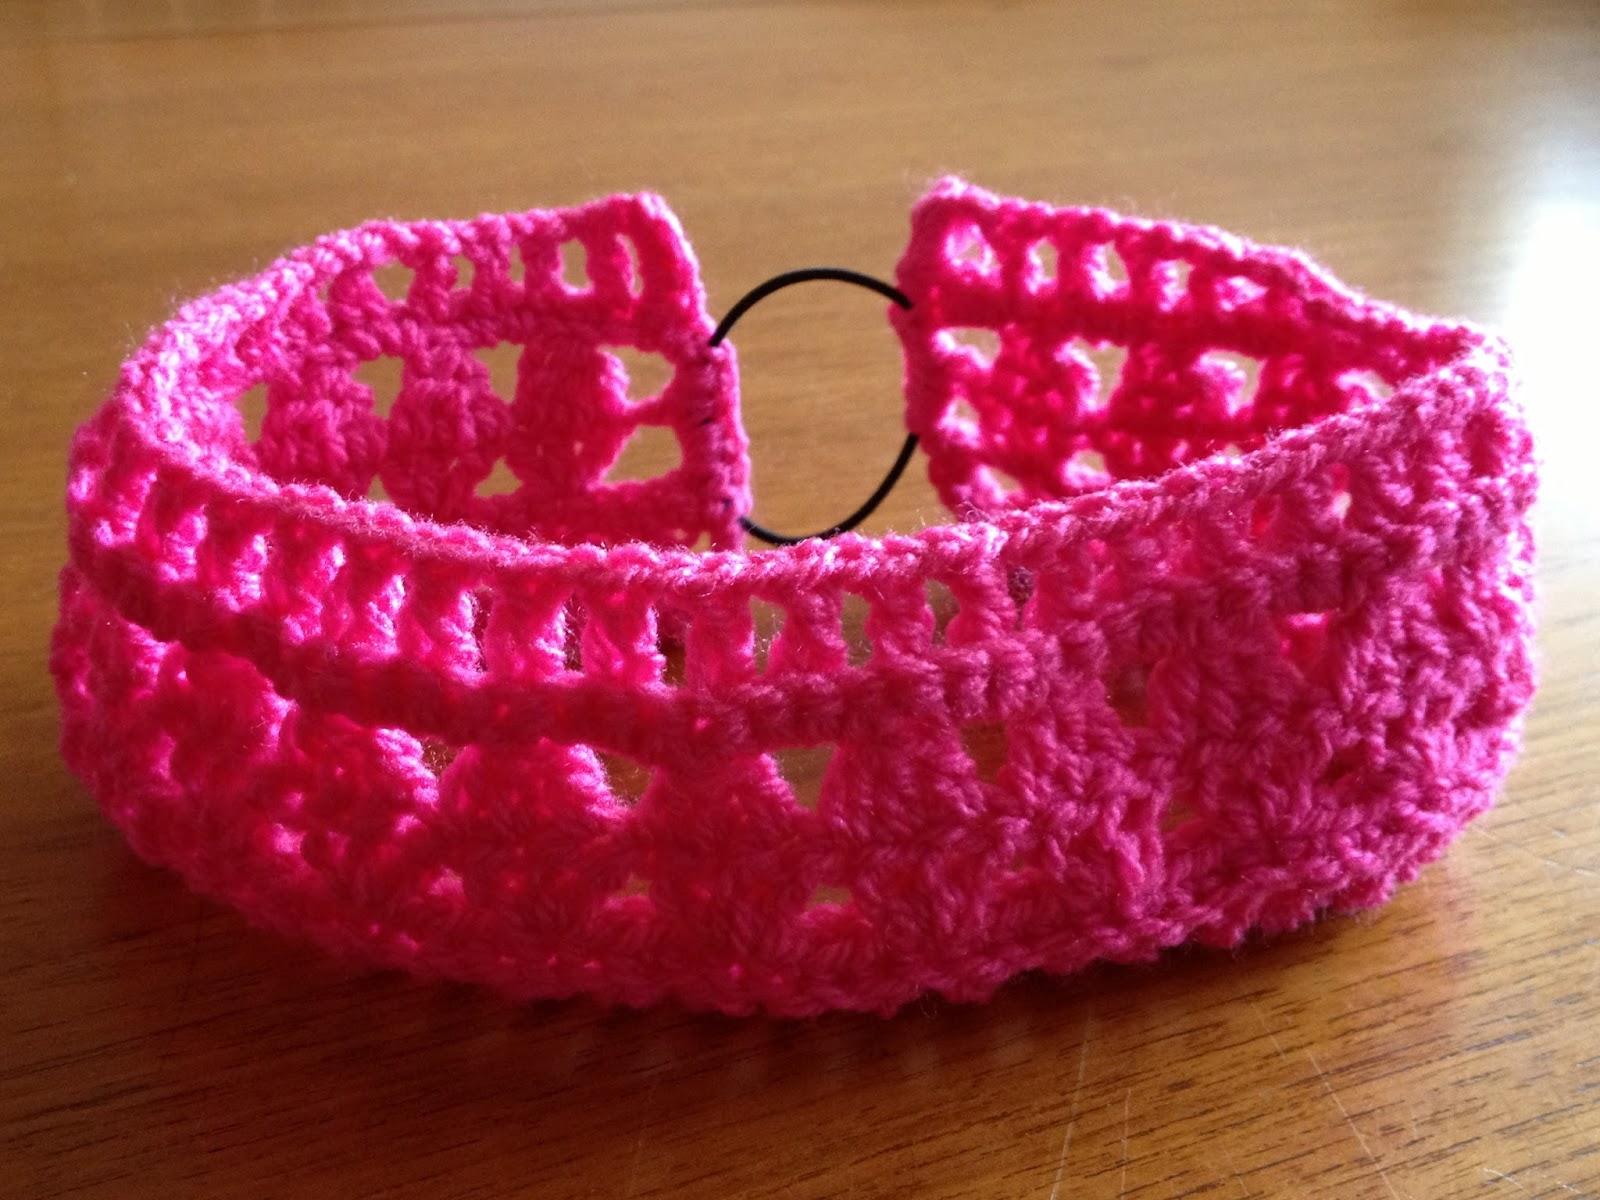 Created For You And Me: Stash-buster crochet project ...